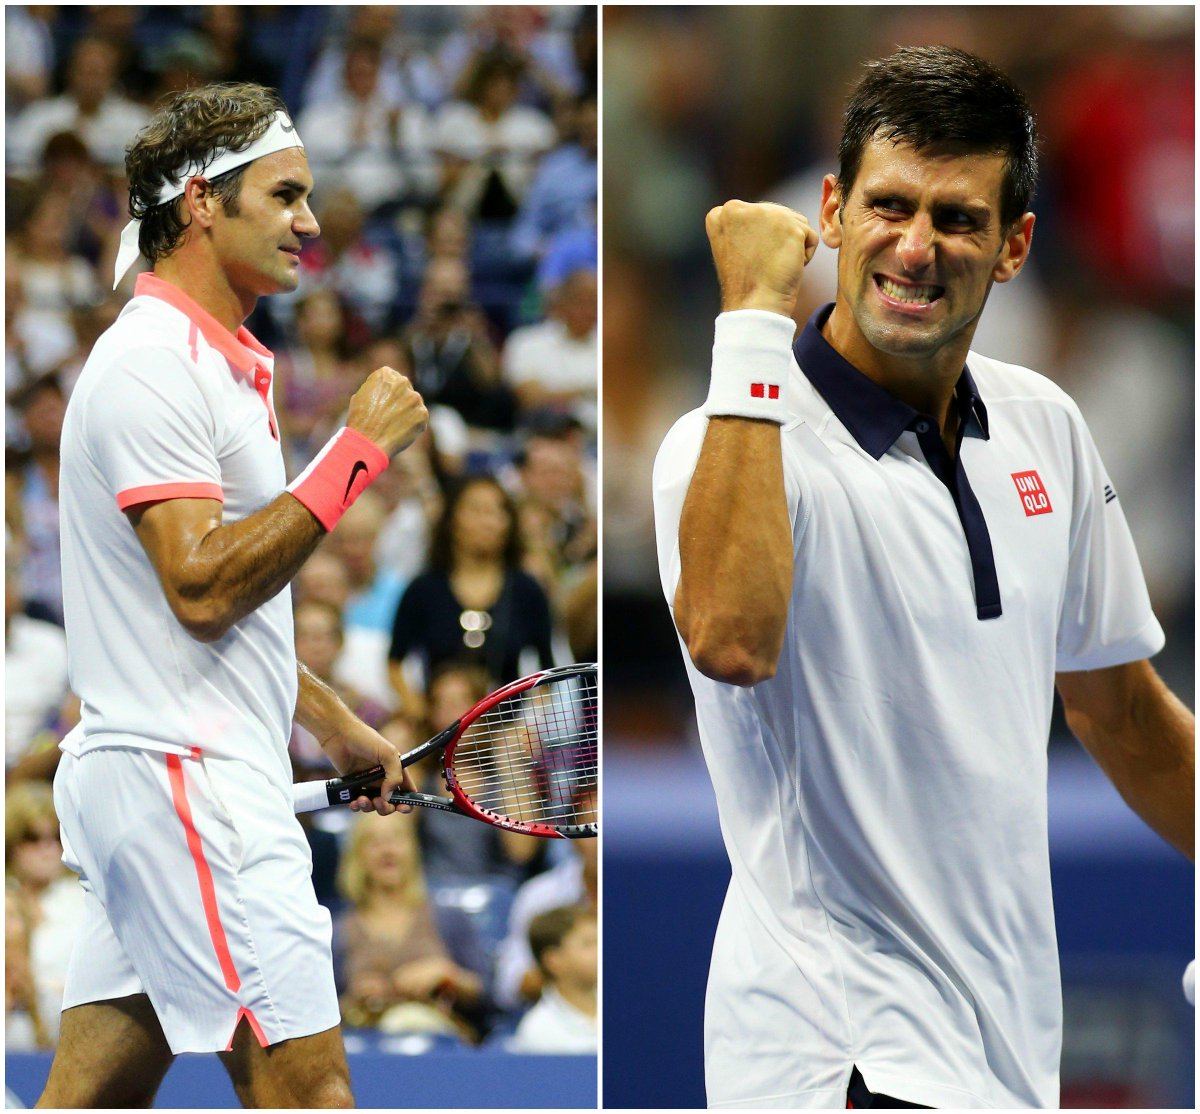 Who's ready for #FedvNole? RT if you think #Federer will win and Fav for #Djokovic. #usopen